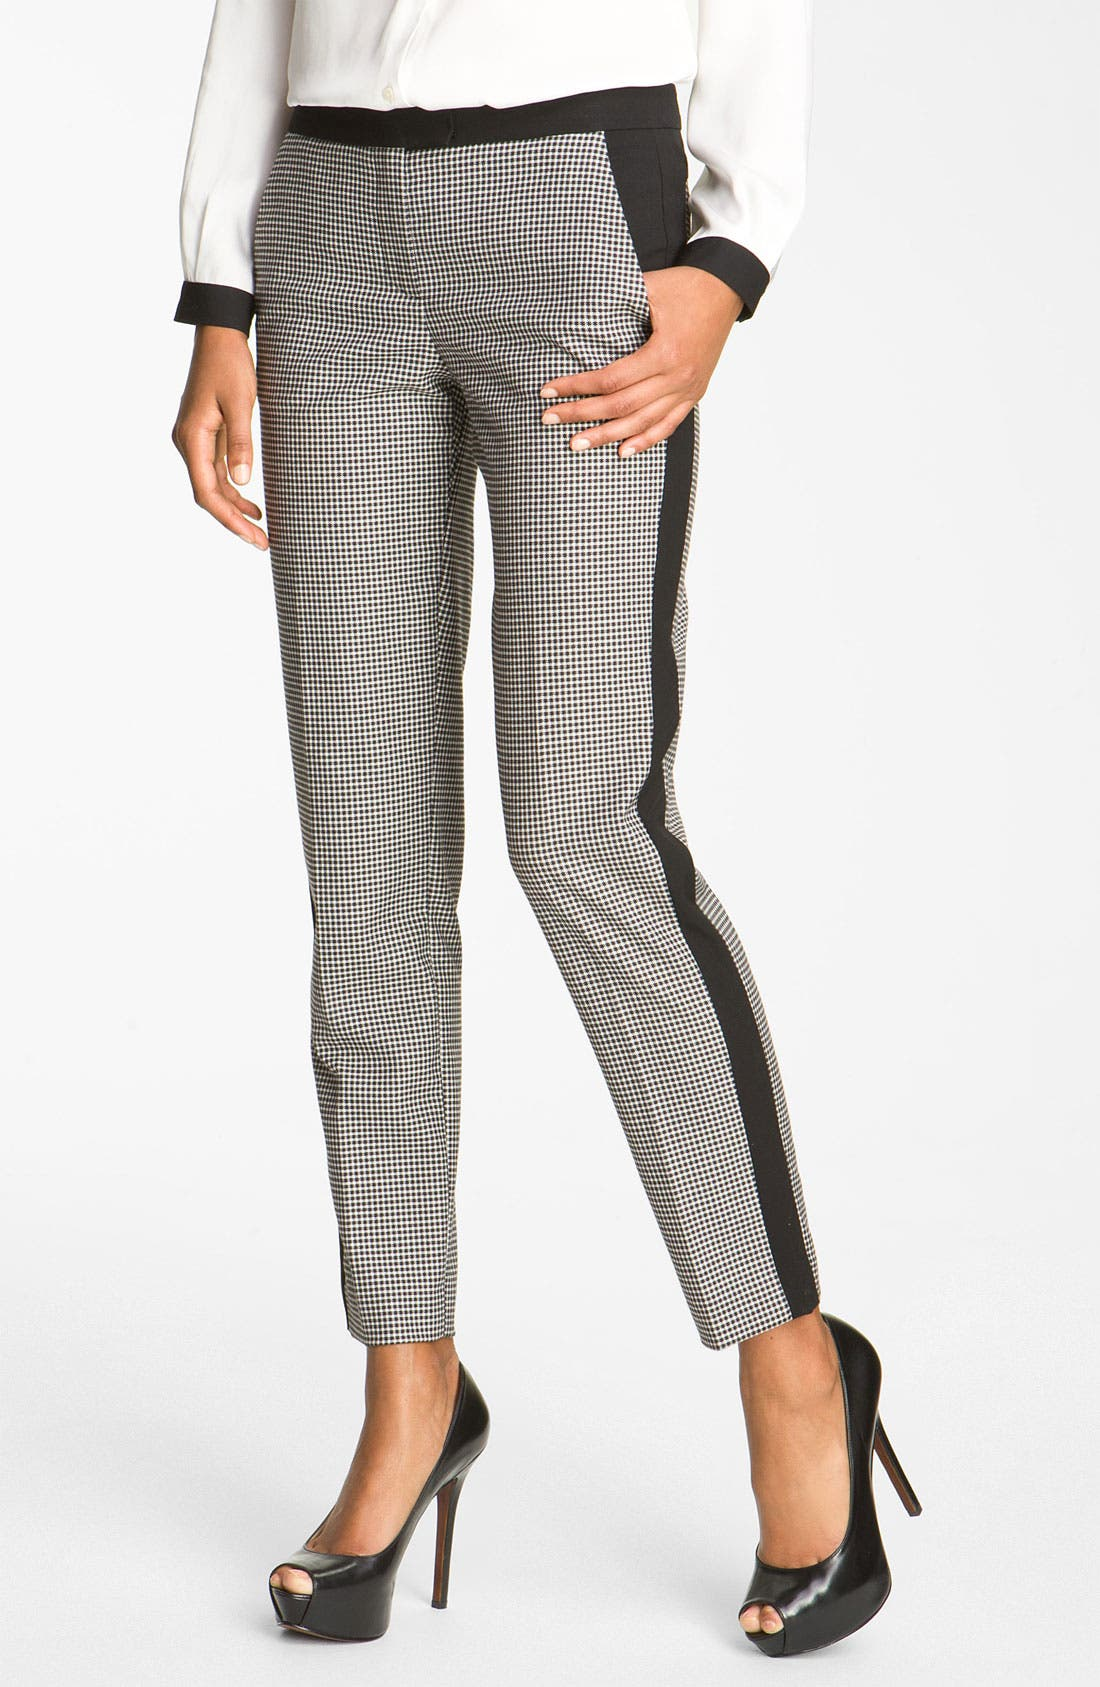 Alternate Image 1 Selected - Vince Camuto Colorblock Houndstooth Ankle Pants